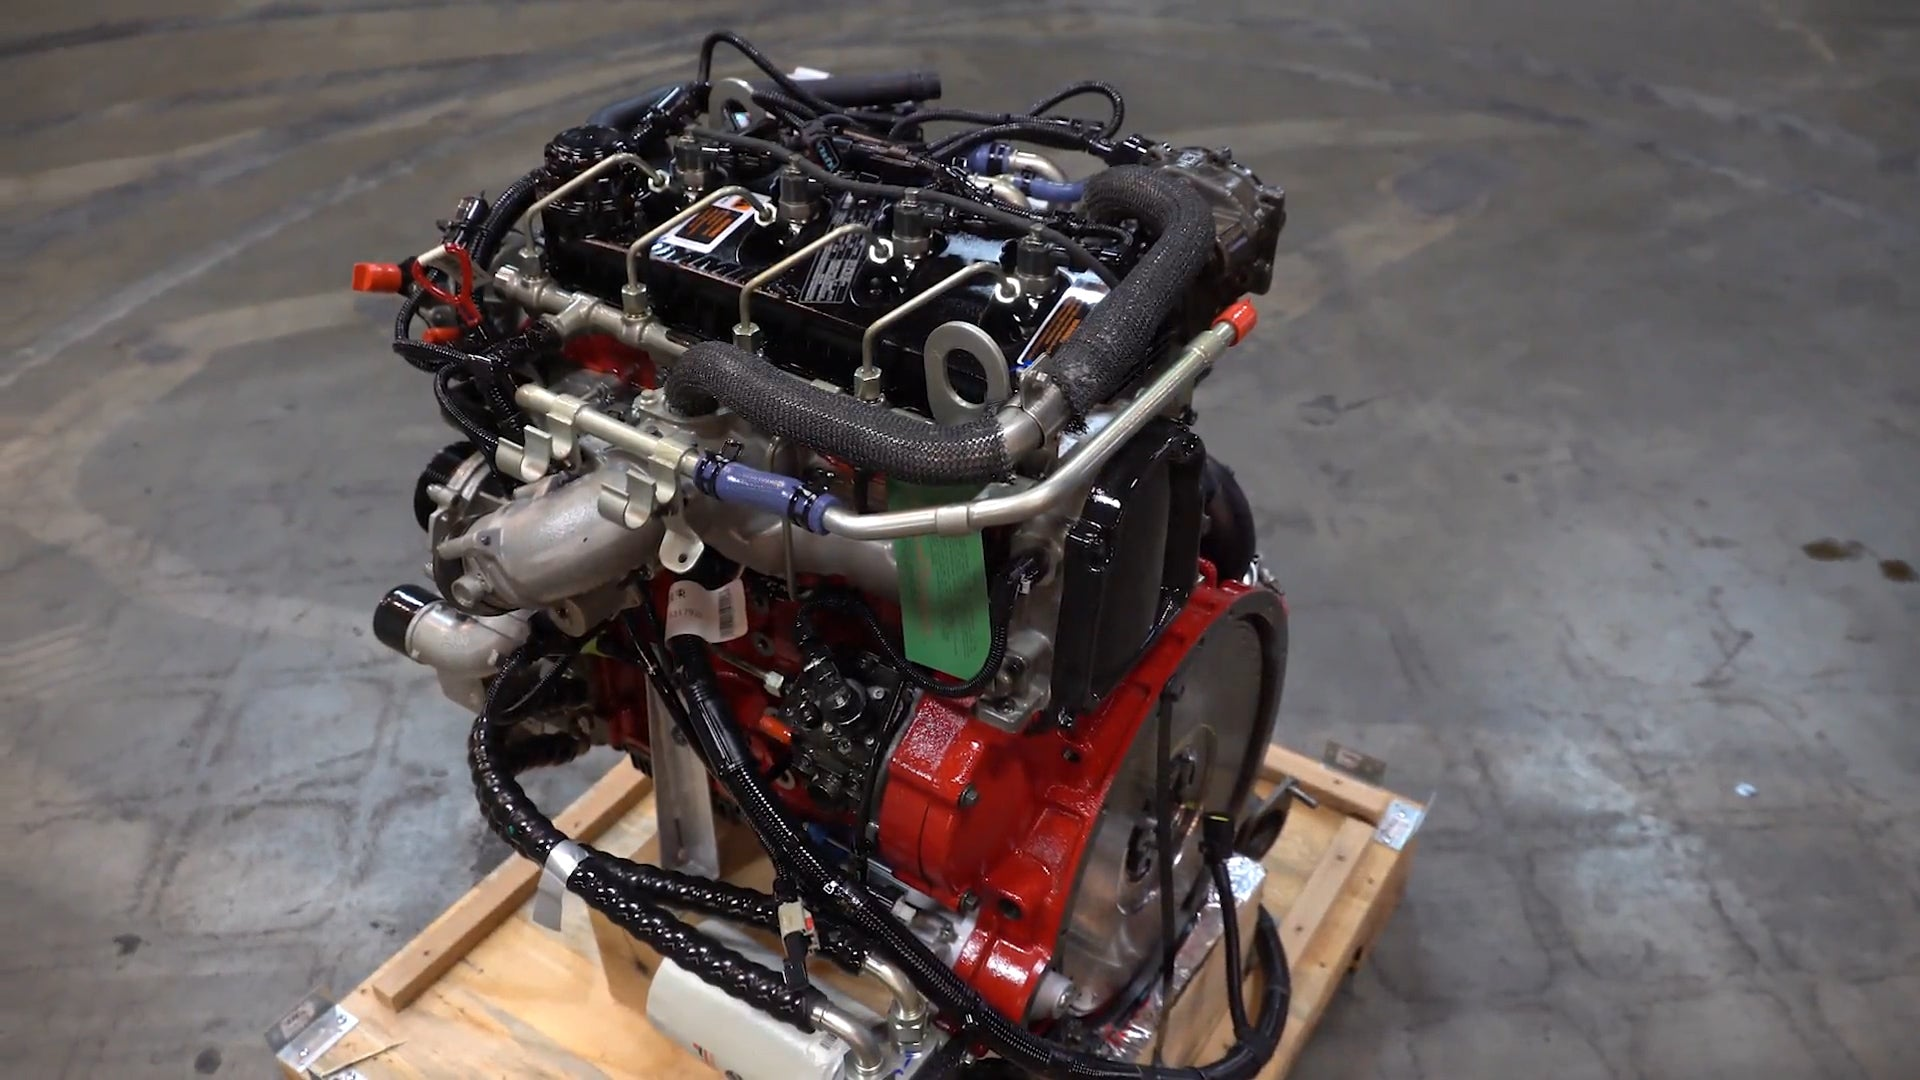 Cummins R2 8 Turbo Diesel Soon to Power Scotto's Land Rover